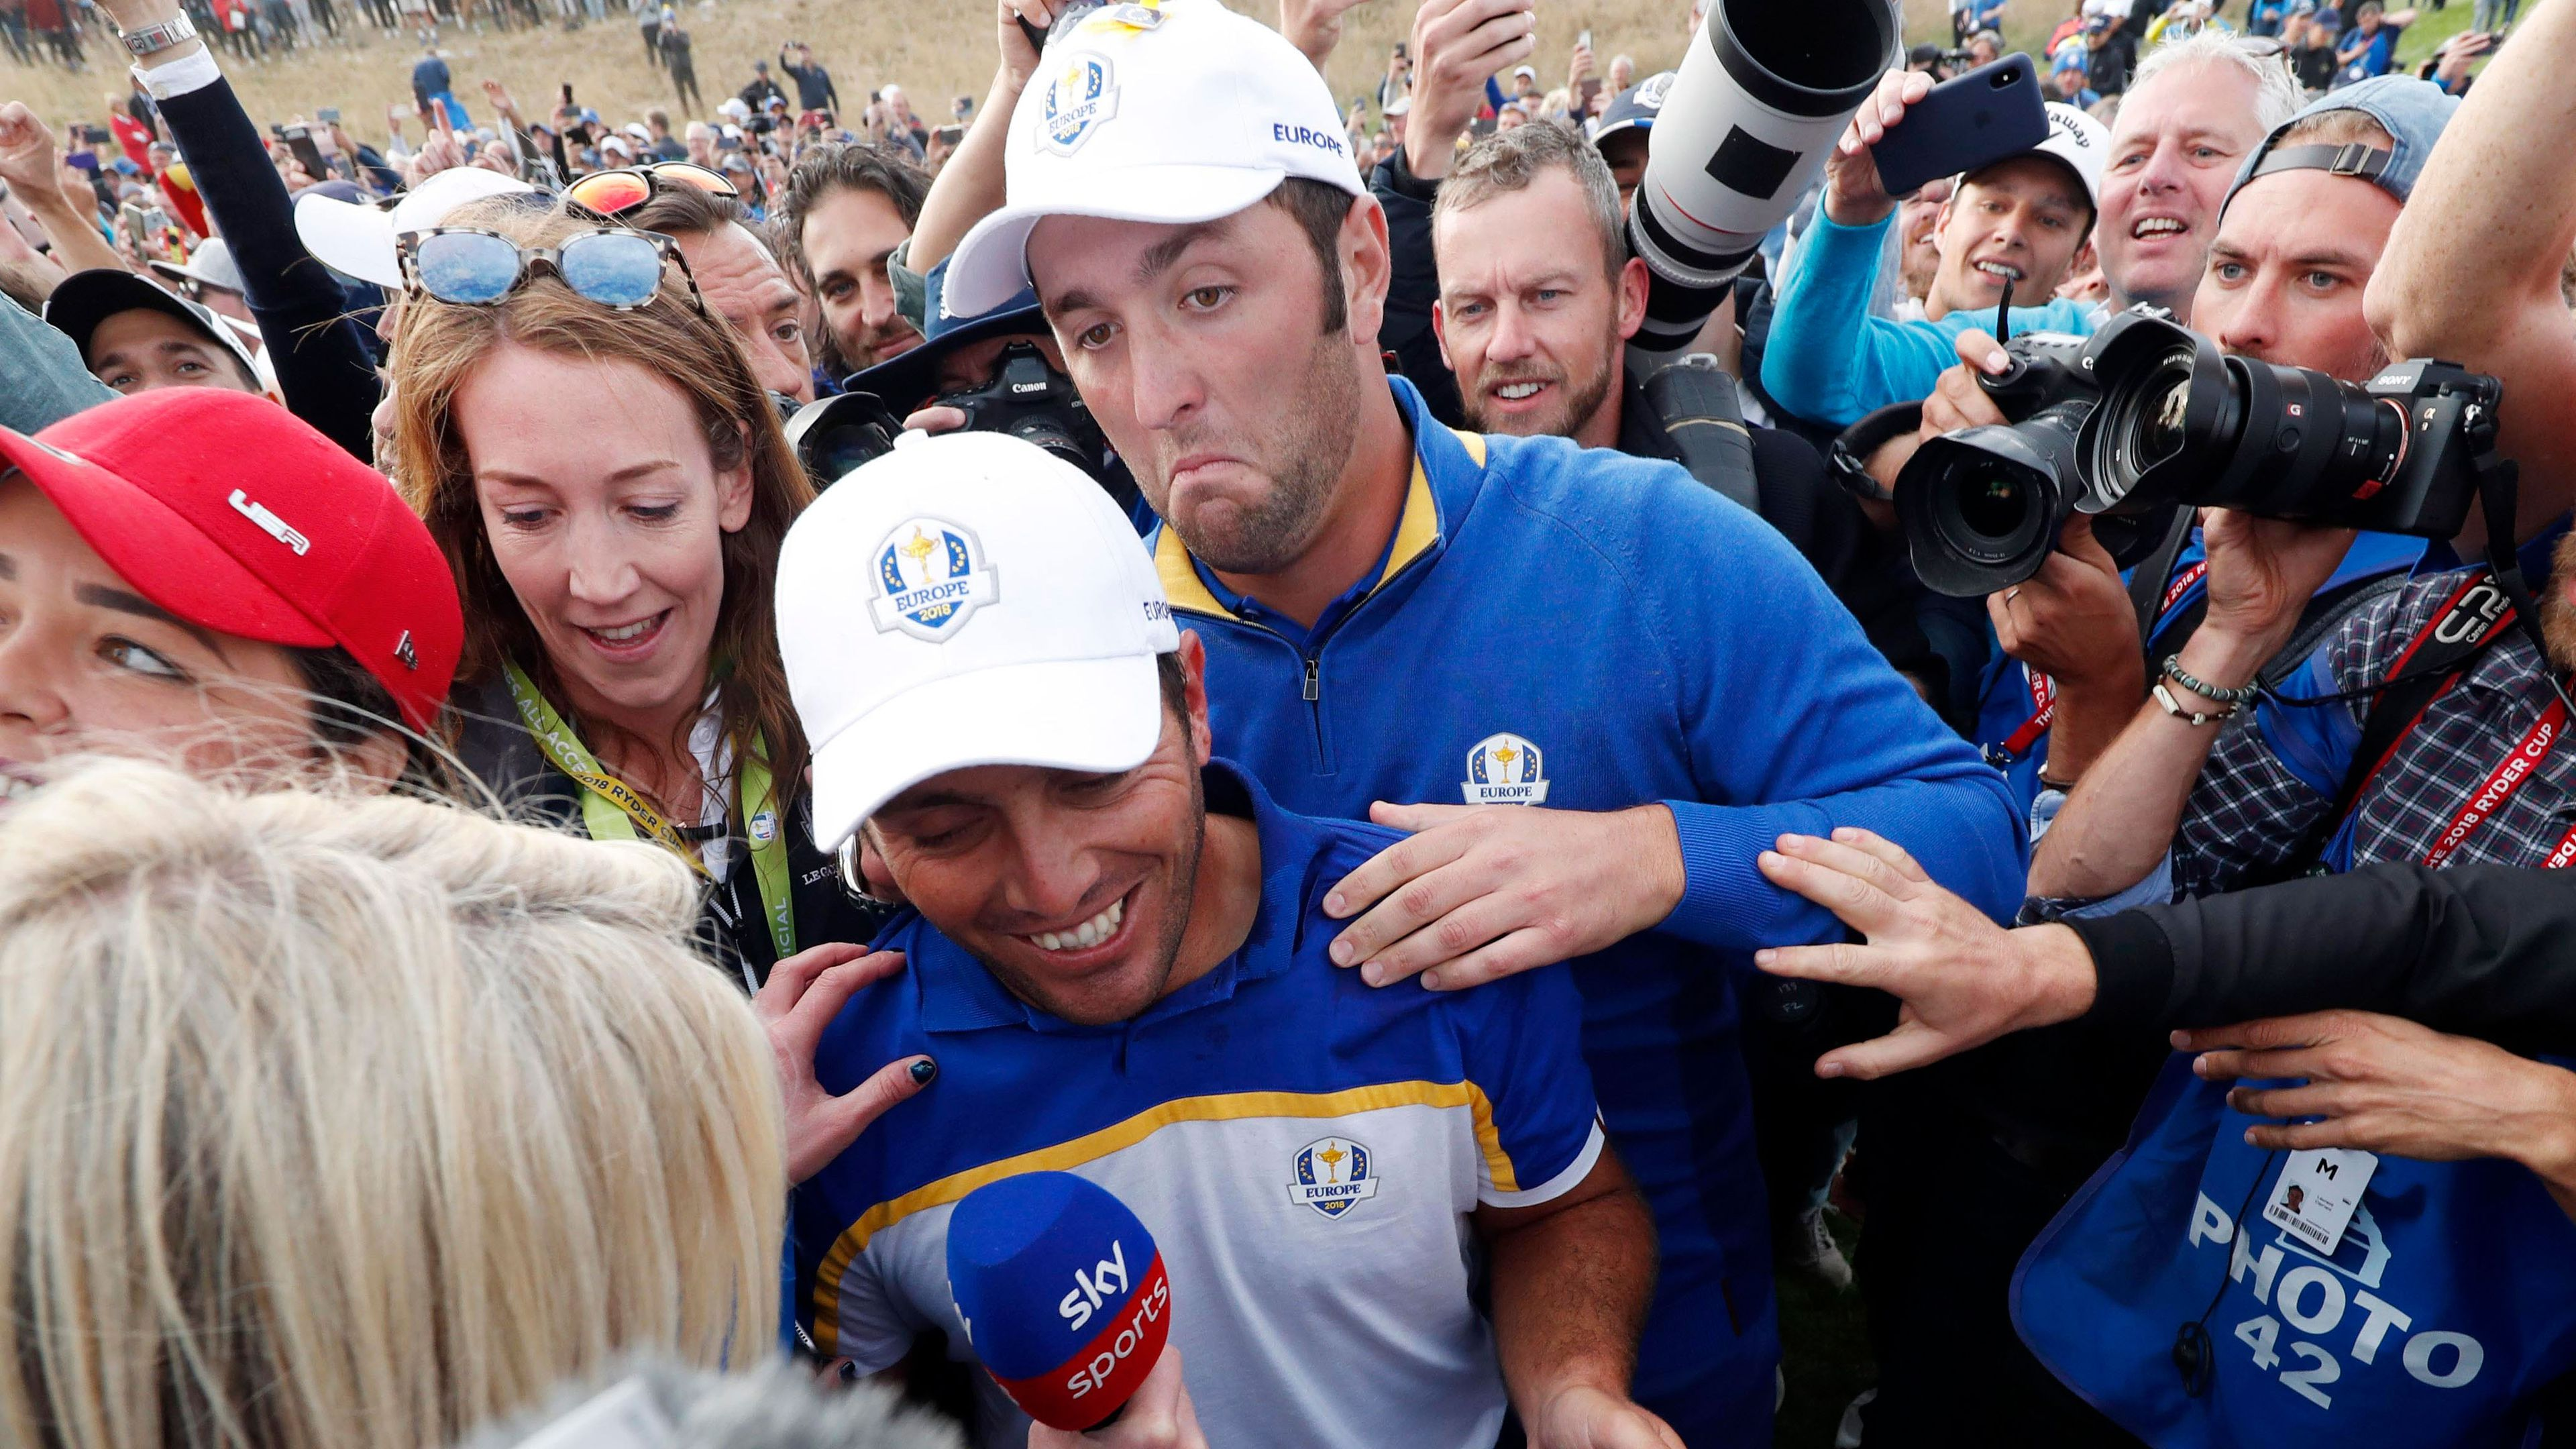 Ryder Cup golf: Europe beats USA after stunning final day